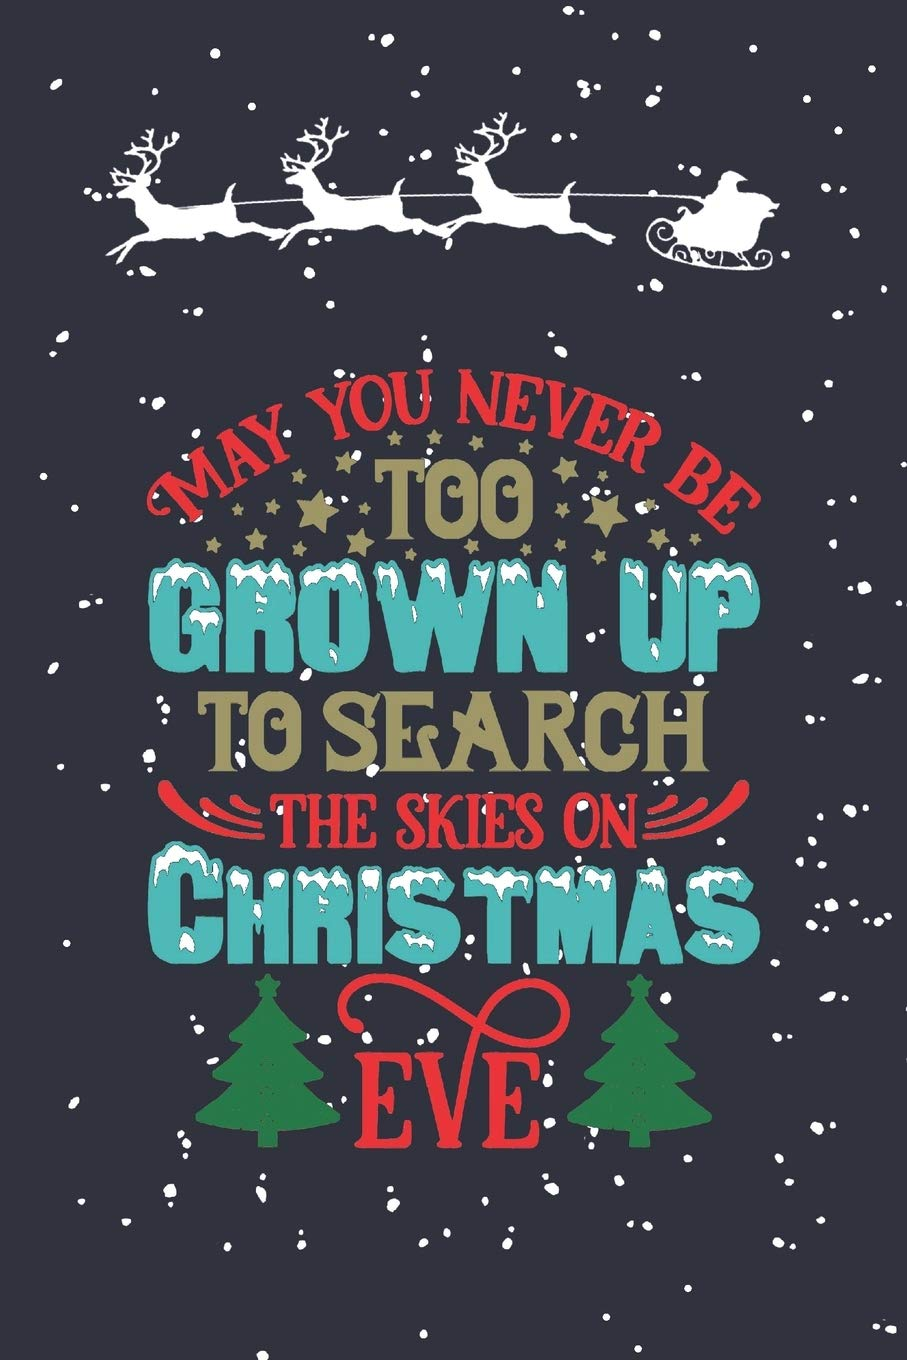 May You Never Be Too Grown Up To Search The Skies On Christmas Eve:  Notebook Journal Diary. Christmas Eve Santa With Snowy Skies: Yuletide  Notebooks: 9781689556668: Amazon.com: Books